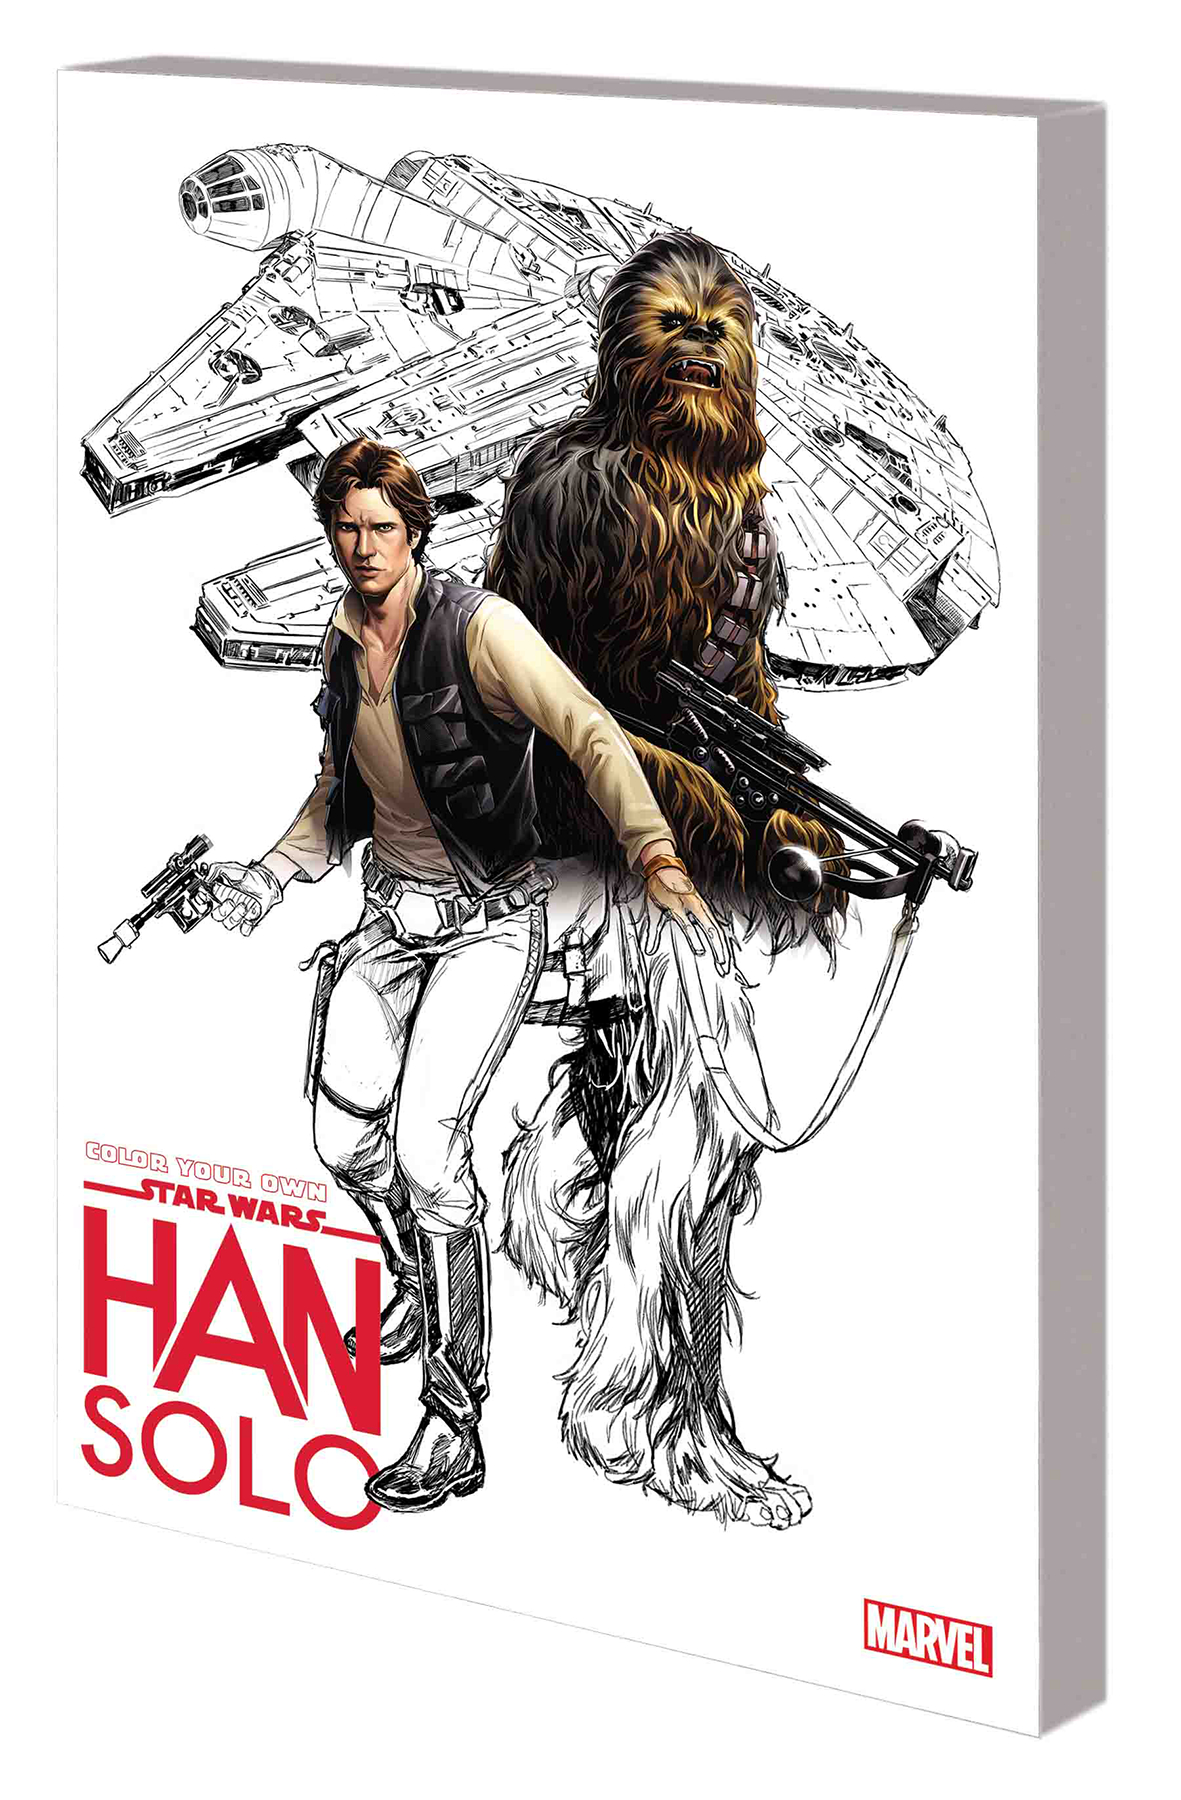 COLOR YOUR OWN STAR WARS HAN SOLO TP